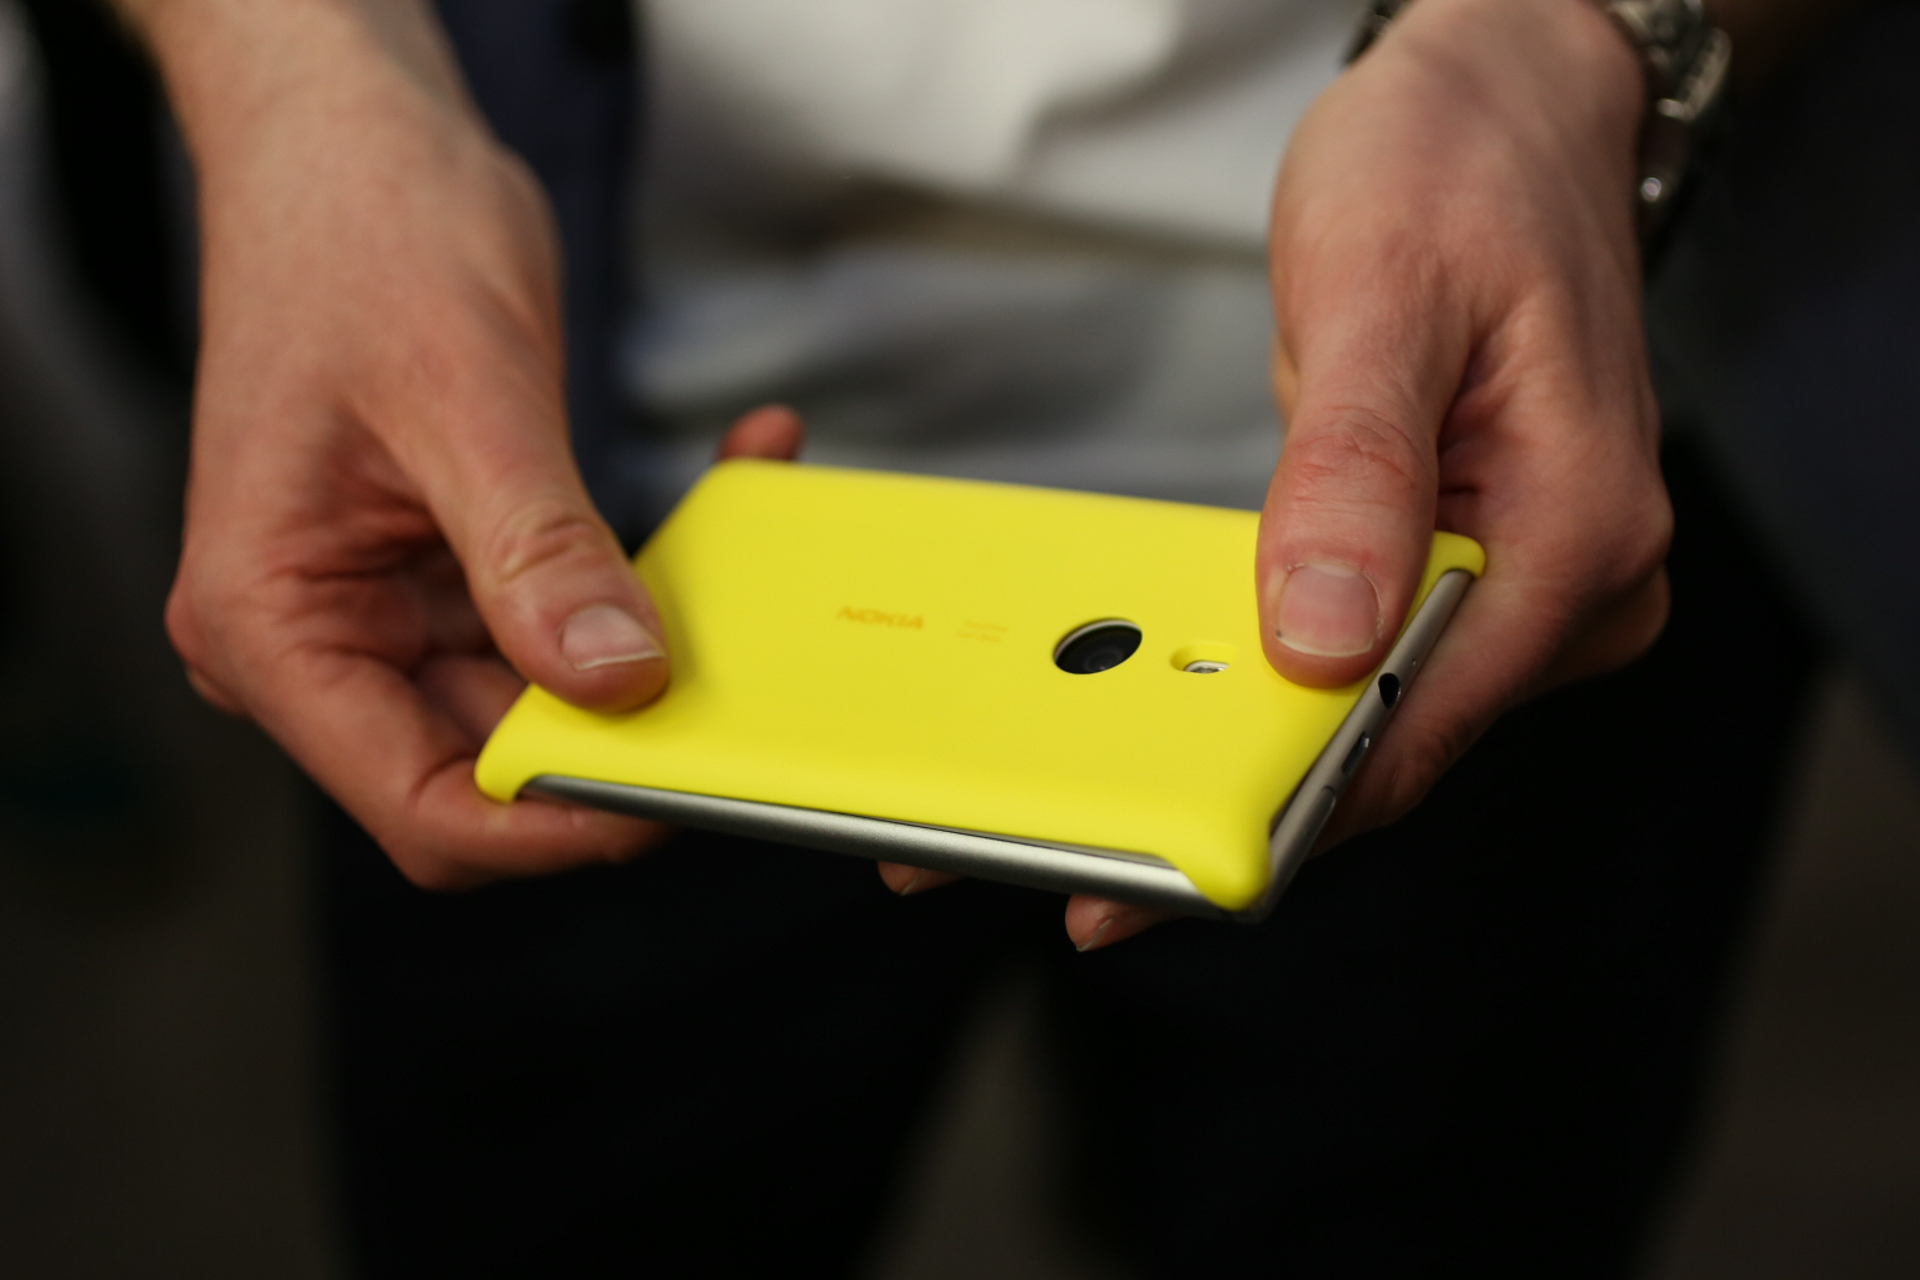 nokia-lumia-925-launch-25.jpg